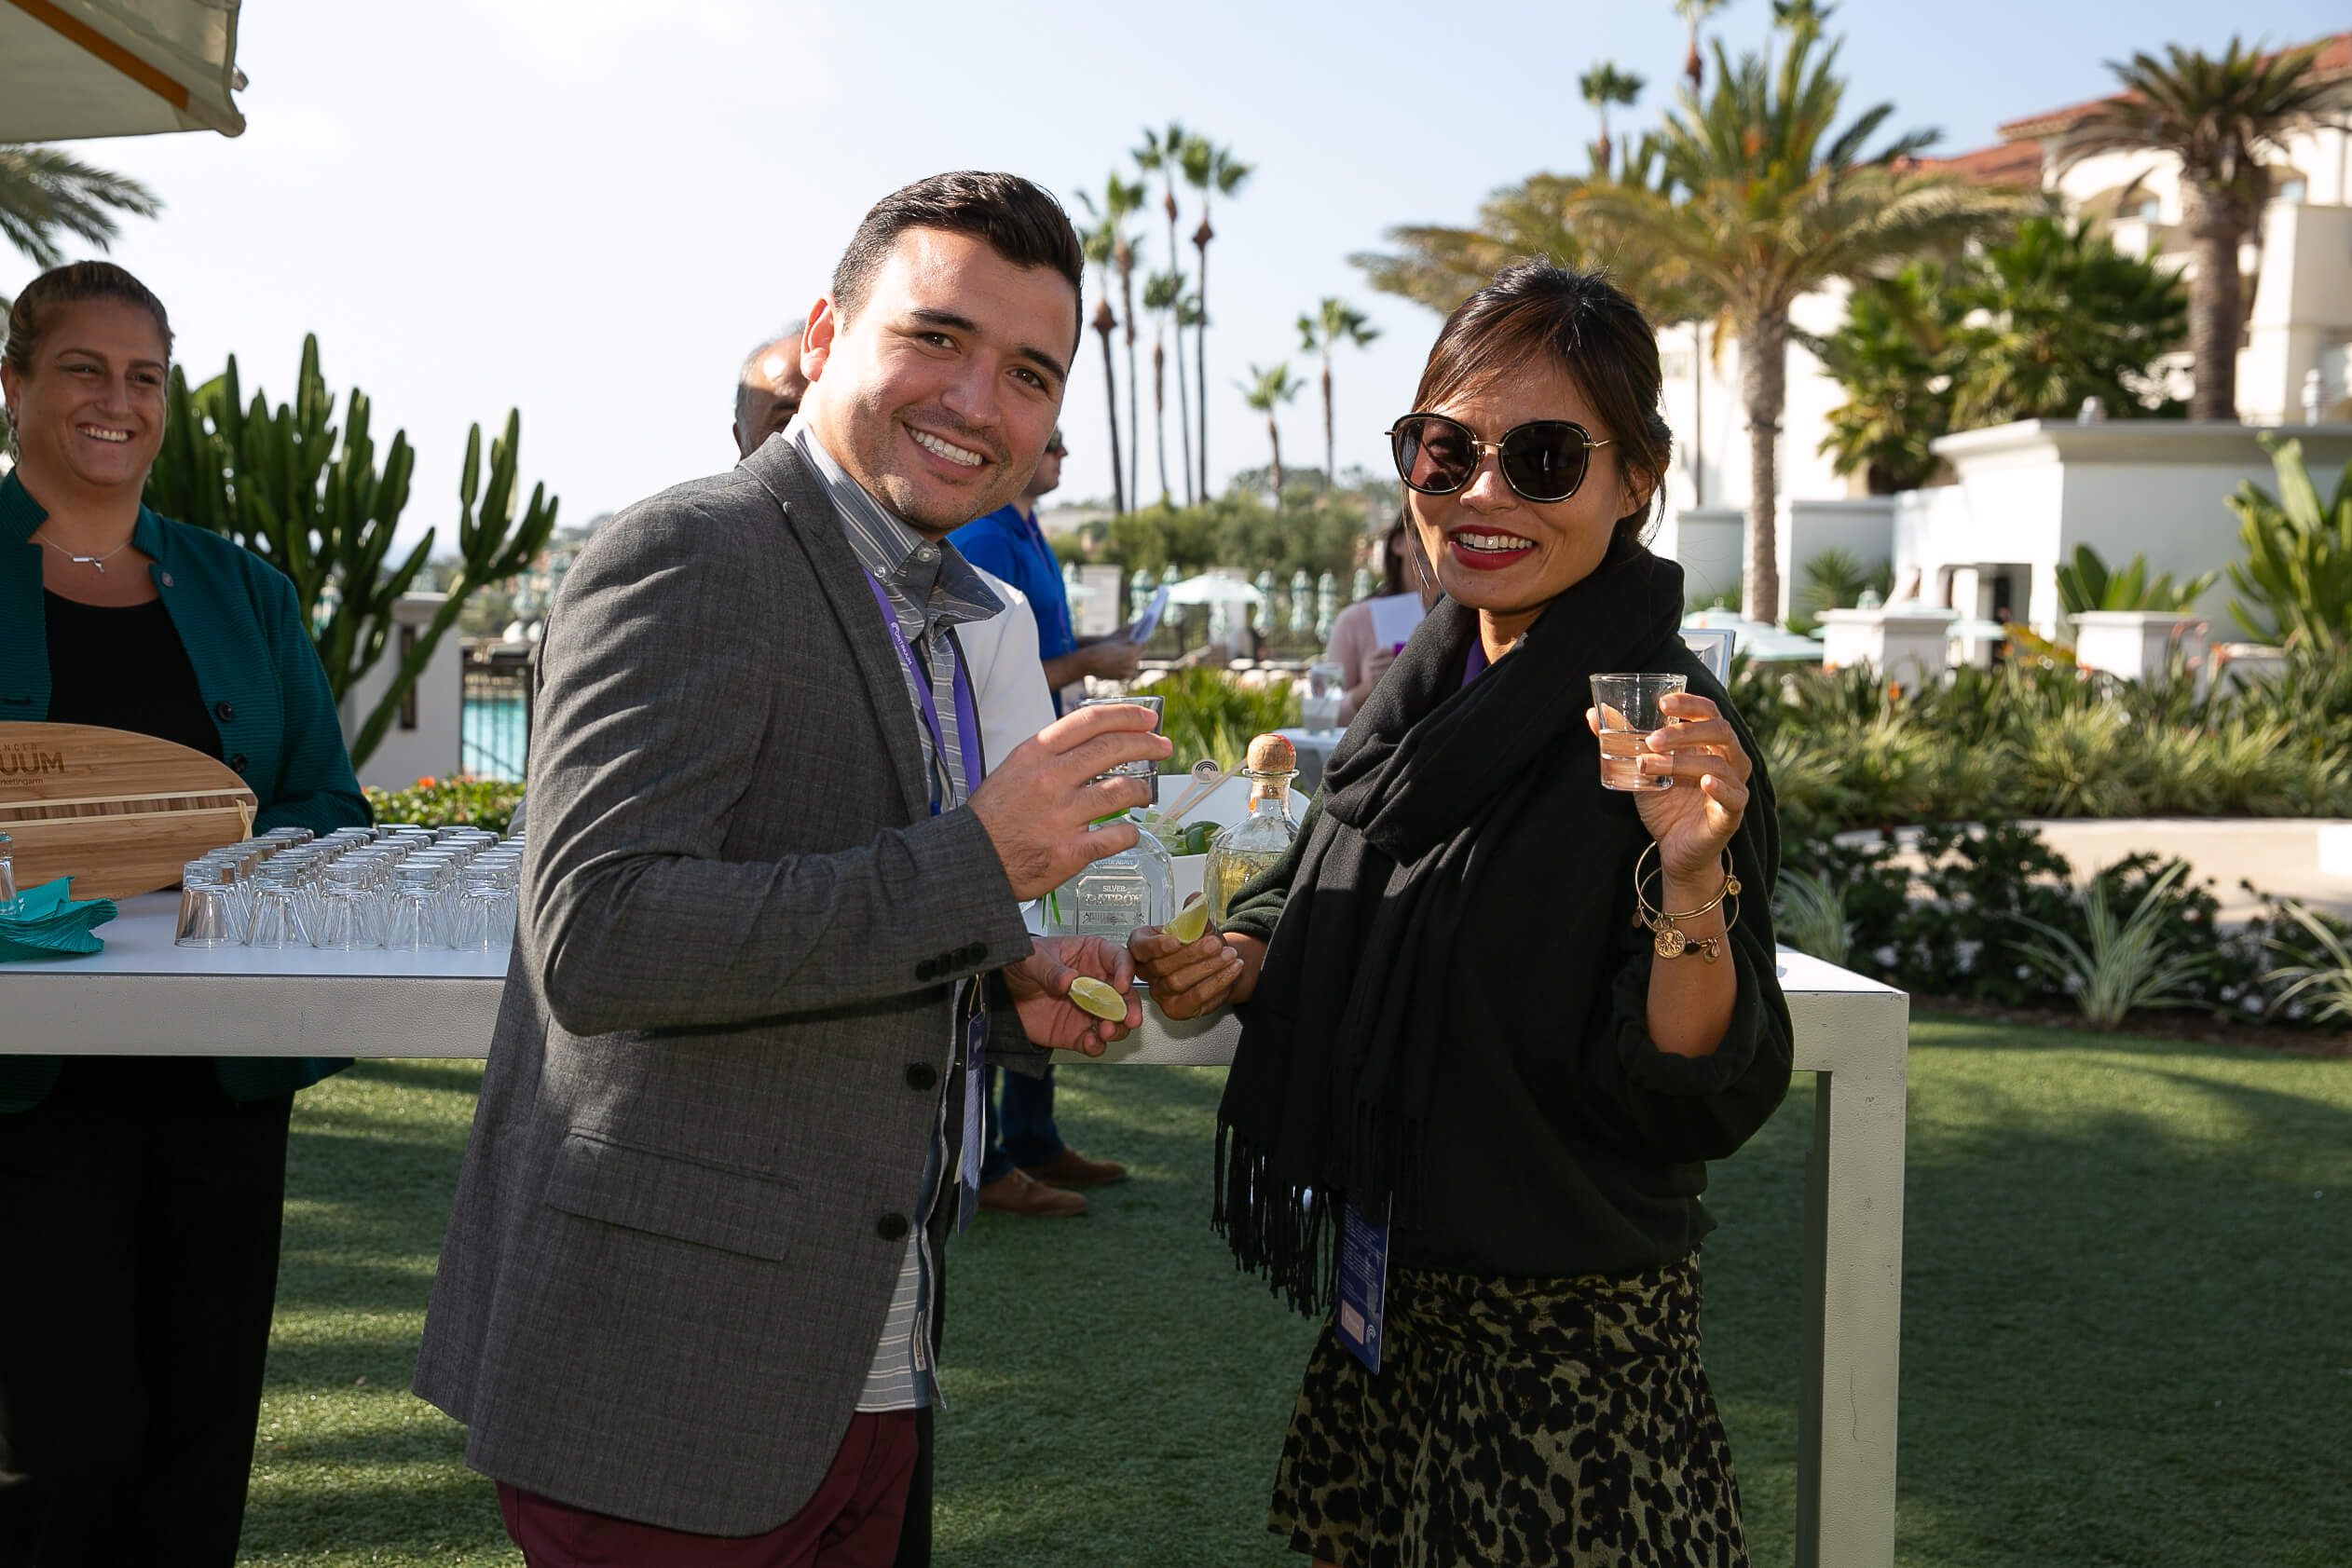 """TMA's Global Events team killed it with a """"Best Of"""" party on the lawn where there was everything from selfie lattes to personal shucked oysters, nitro treats, candy sushi, and more, which served as the backdrop for connecting one-on-one conversations between brands and partners."""